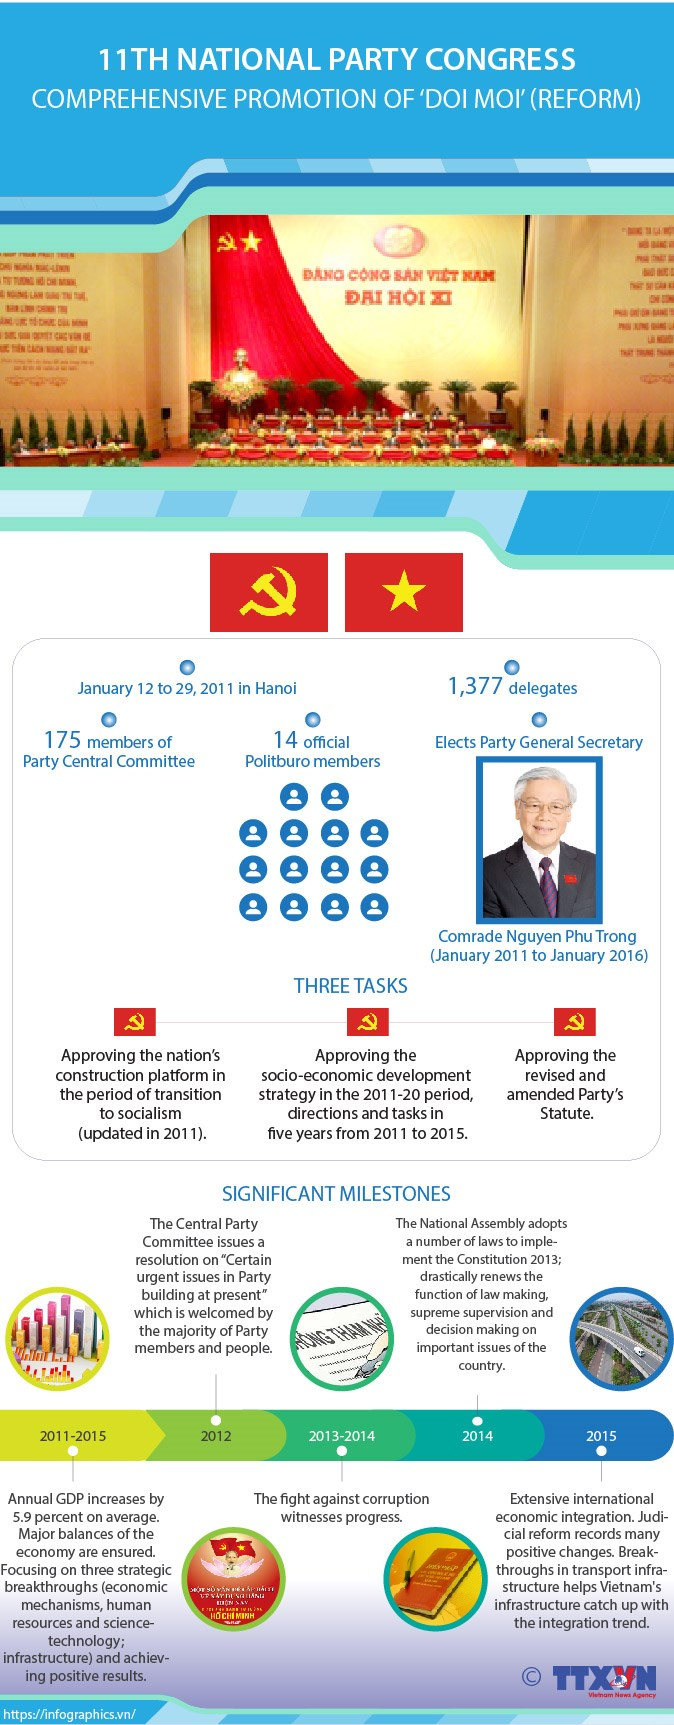 11th Party Congress: Comprehensive promotion of 'doi moi' (reform) hinh anh 1